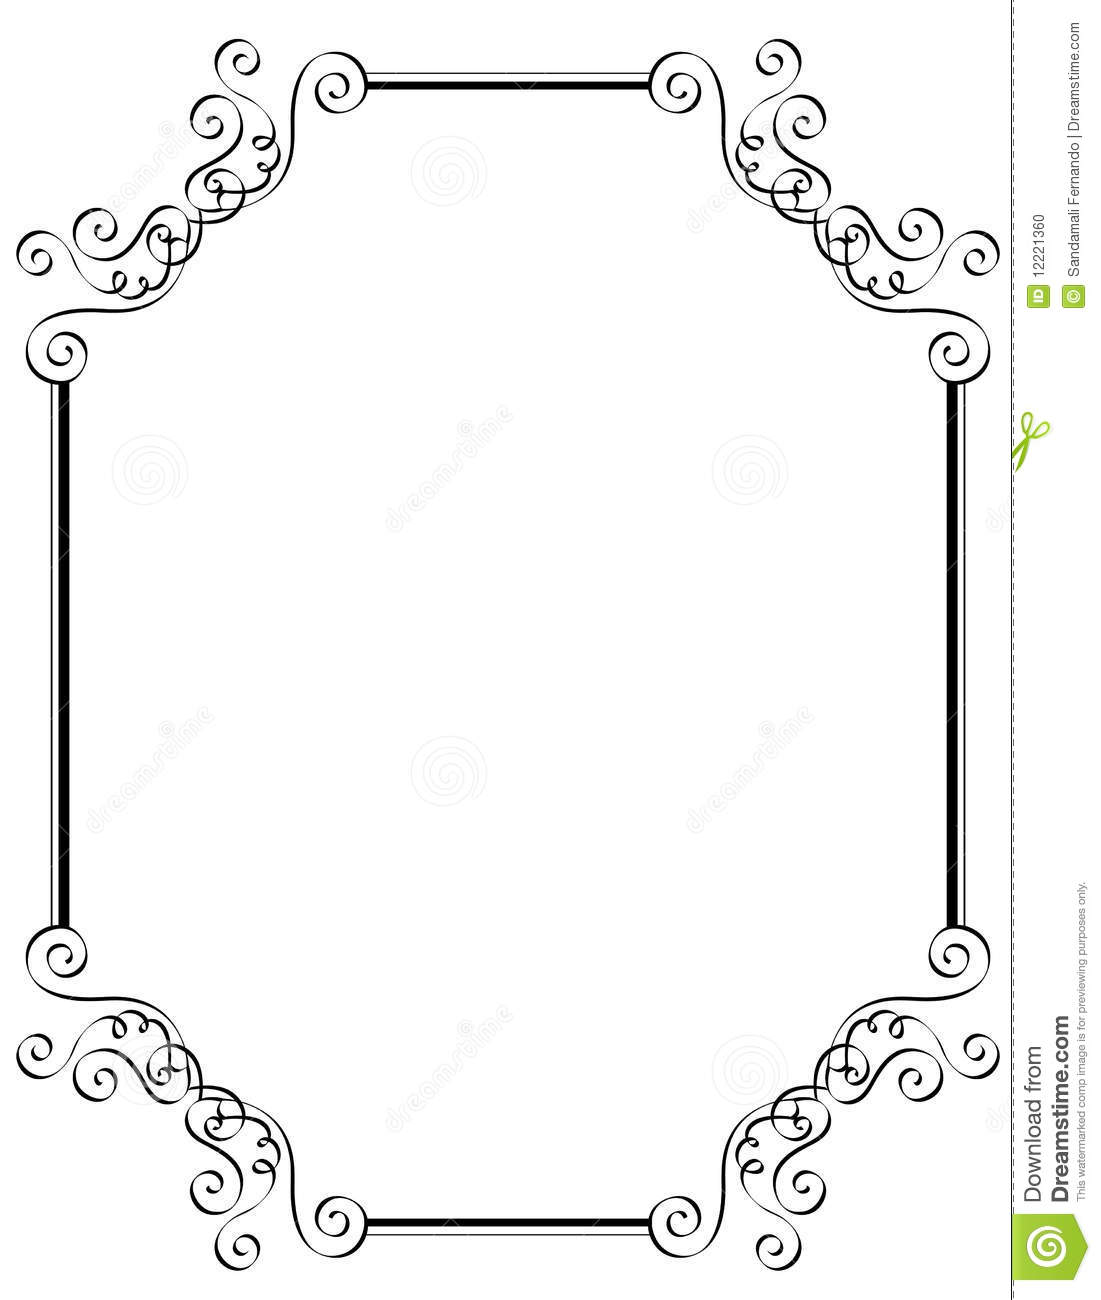 Invitation Border Frame Stock Vector Illustration Of